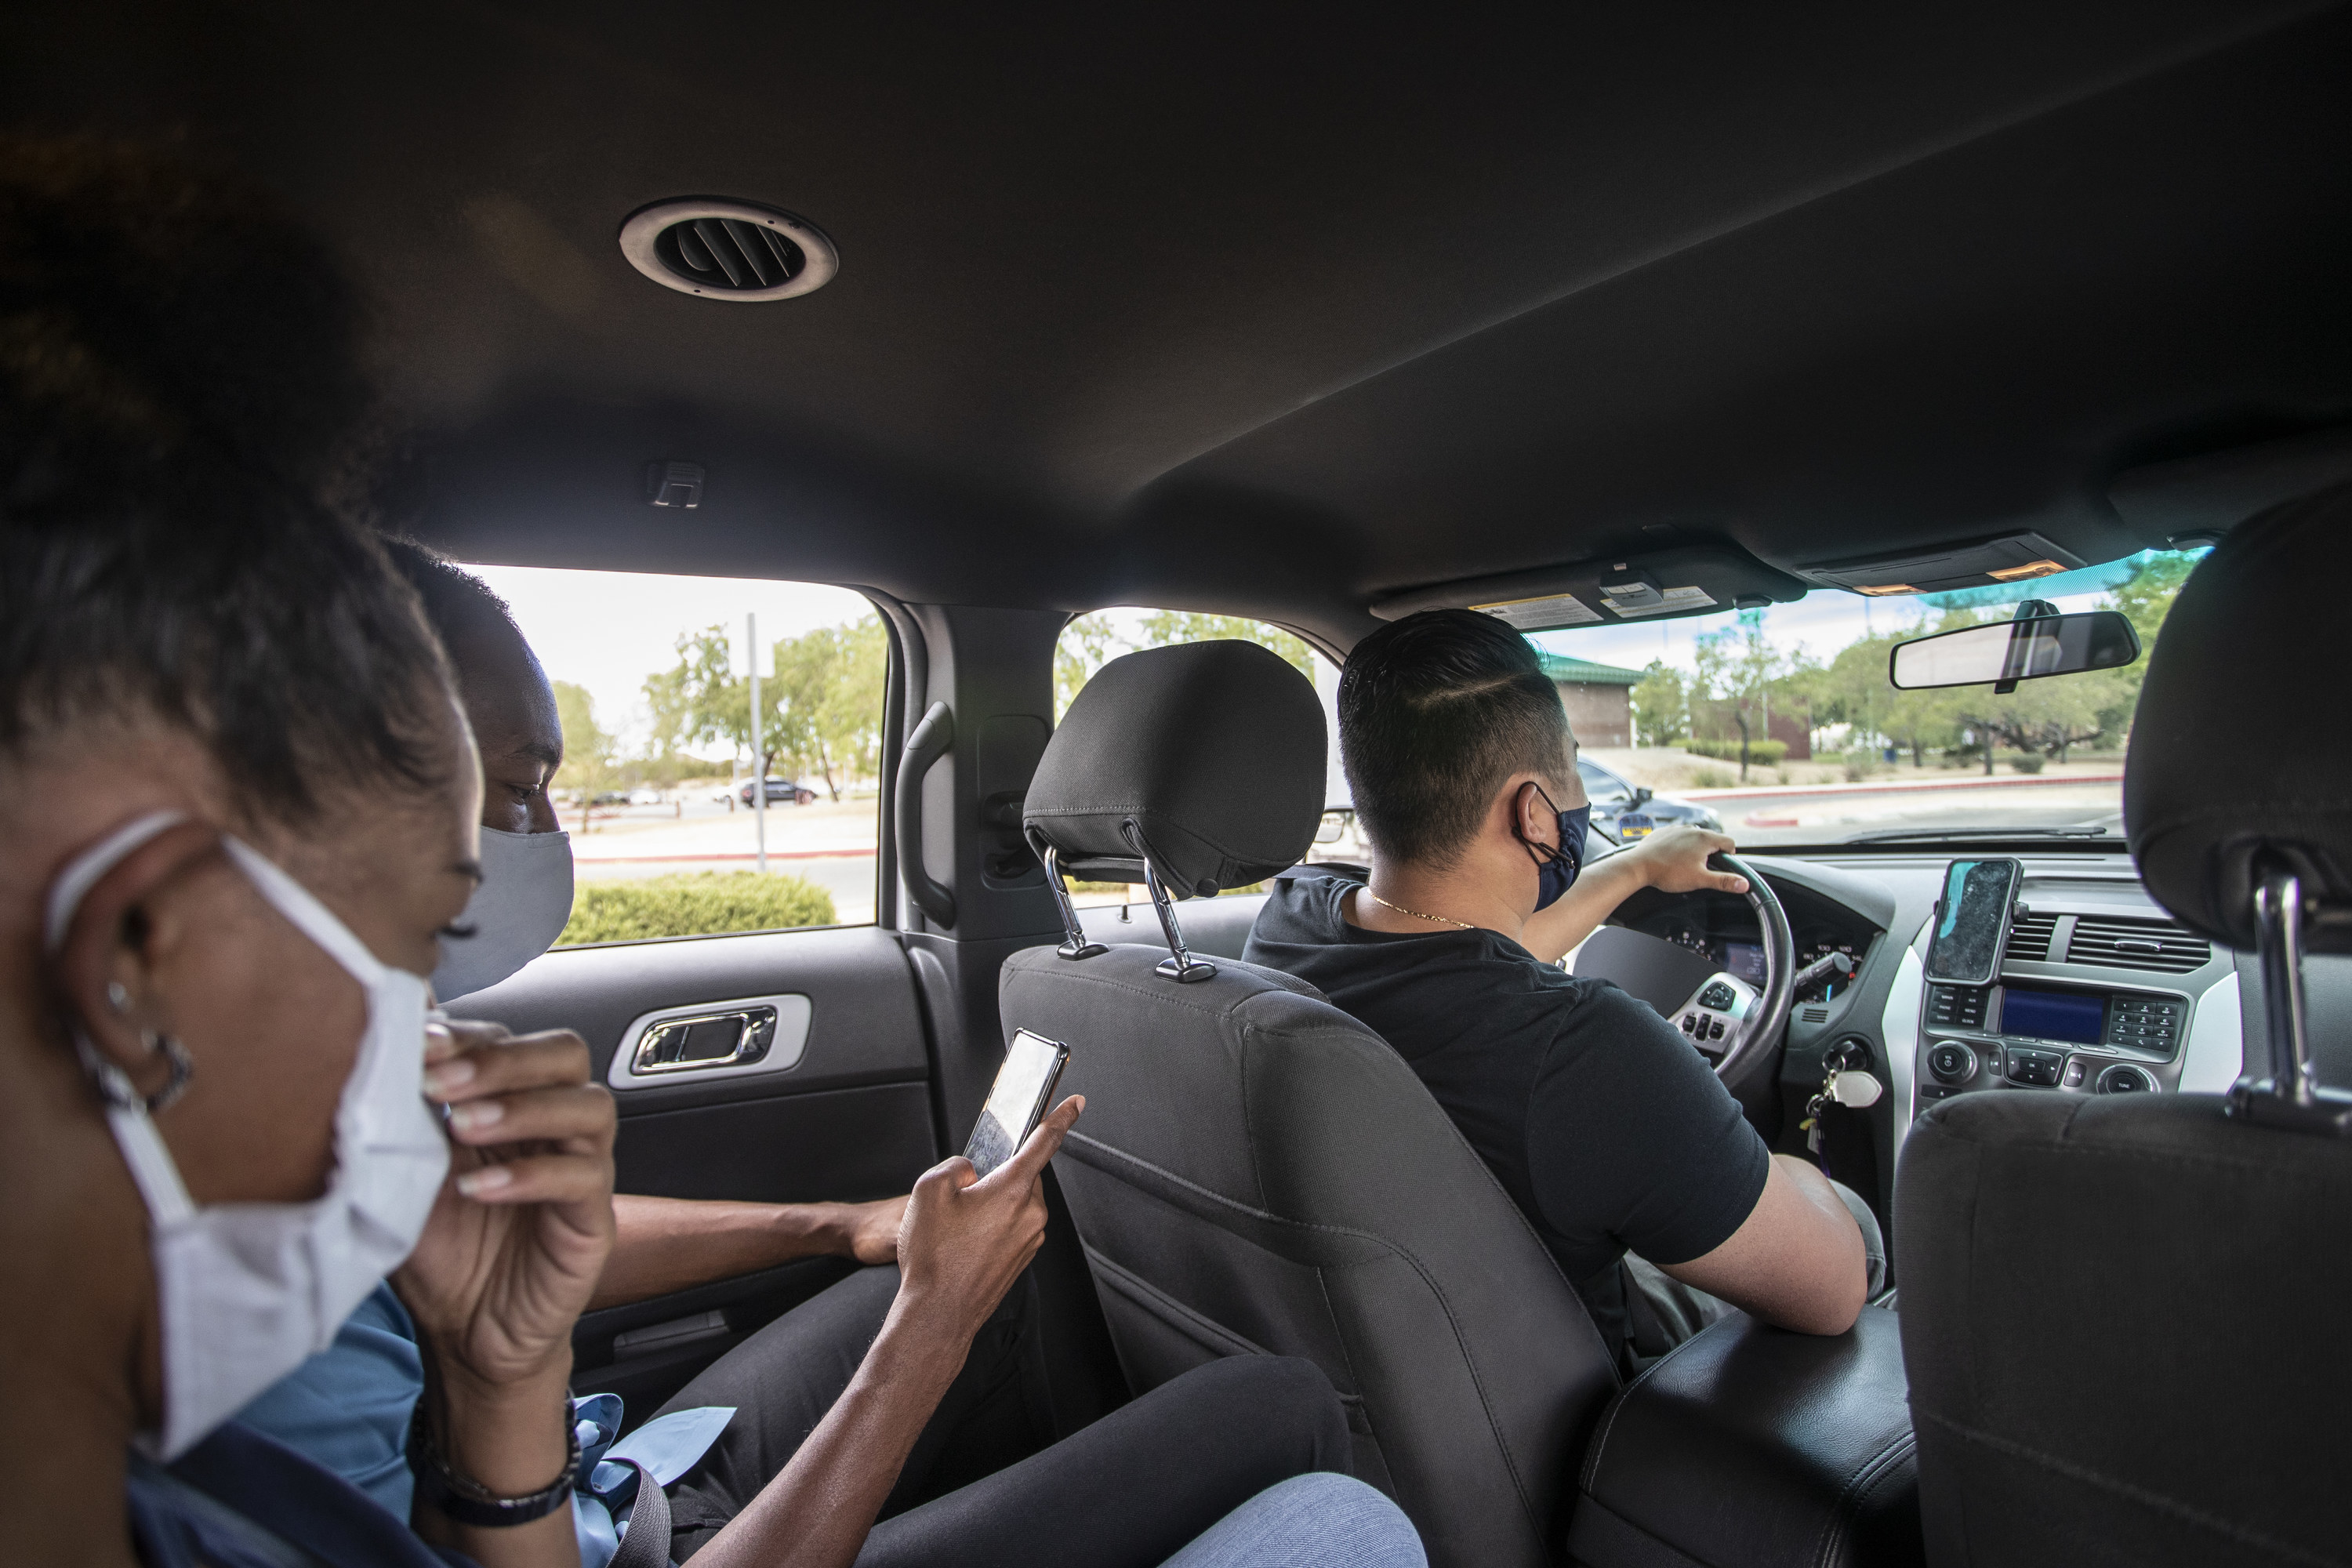 Uber driver driving with two passengers in the back seat.